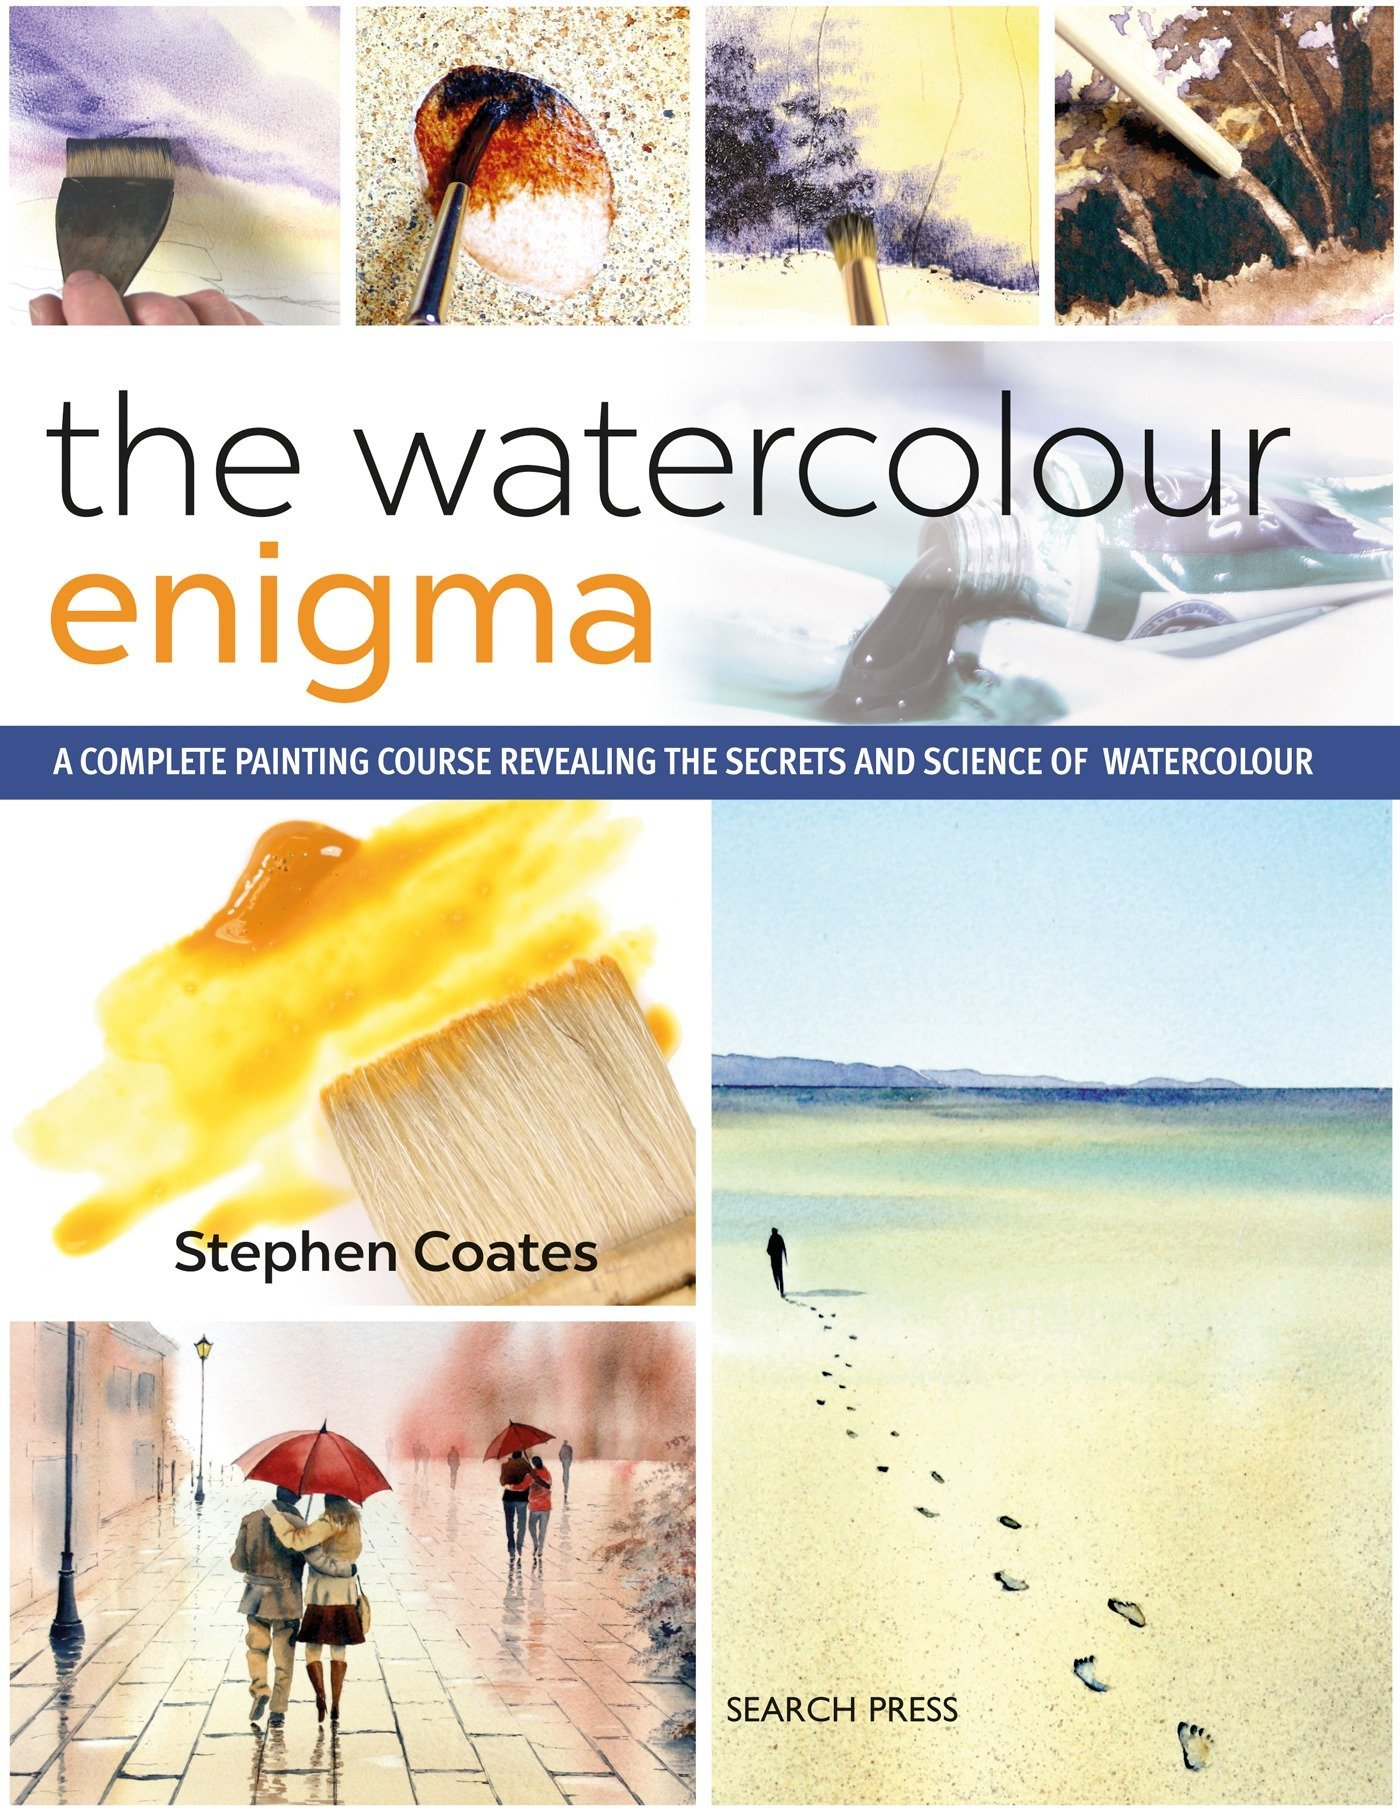 Watercolour Enigma, The: A Complete Painting Course Revealing the Secrets and Science of Watercolour ebook